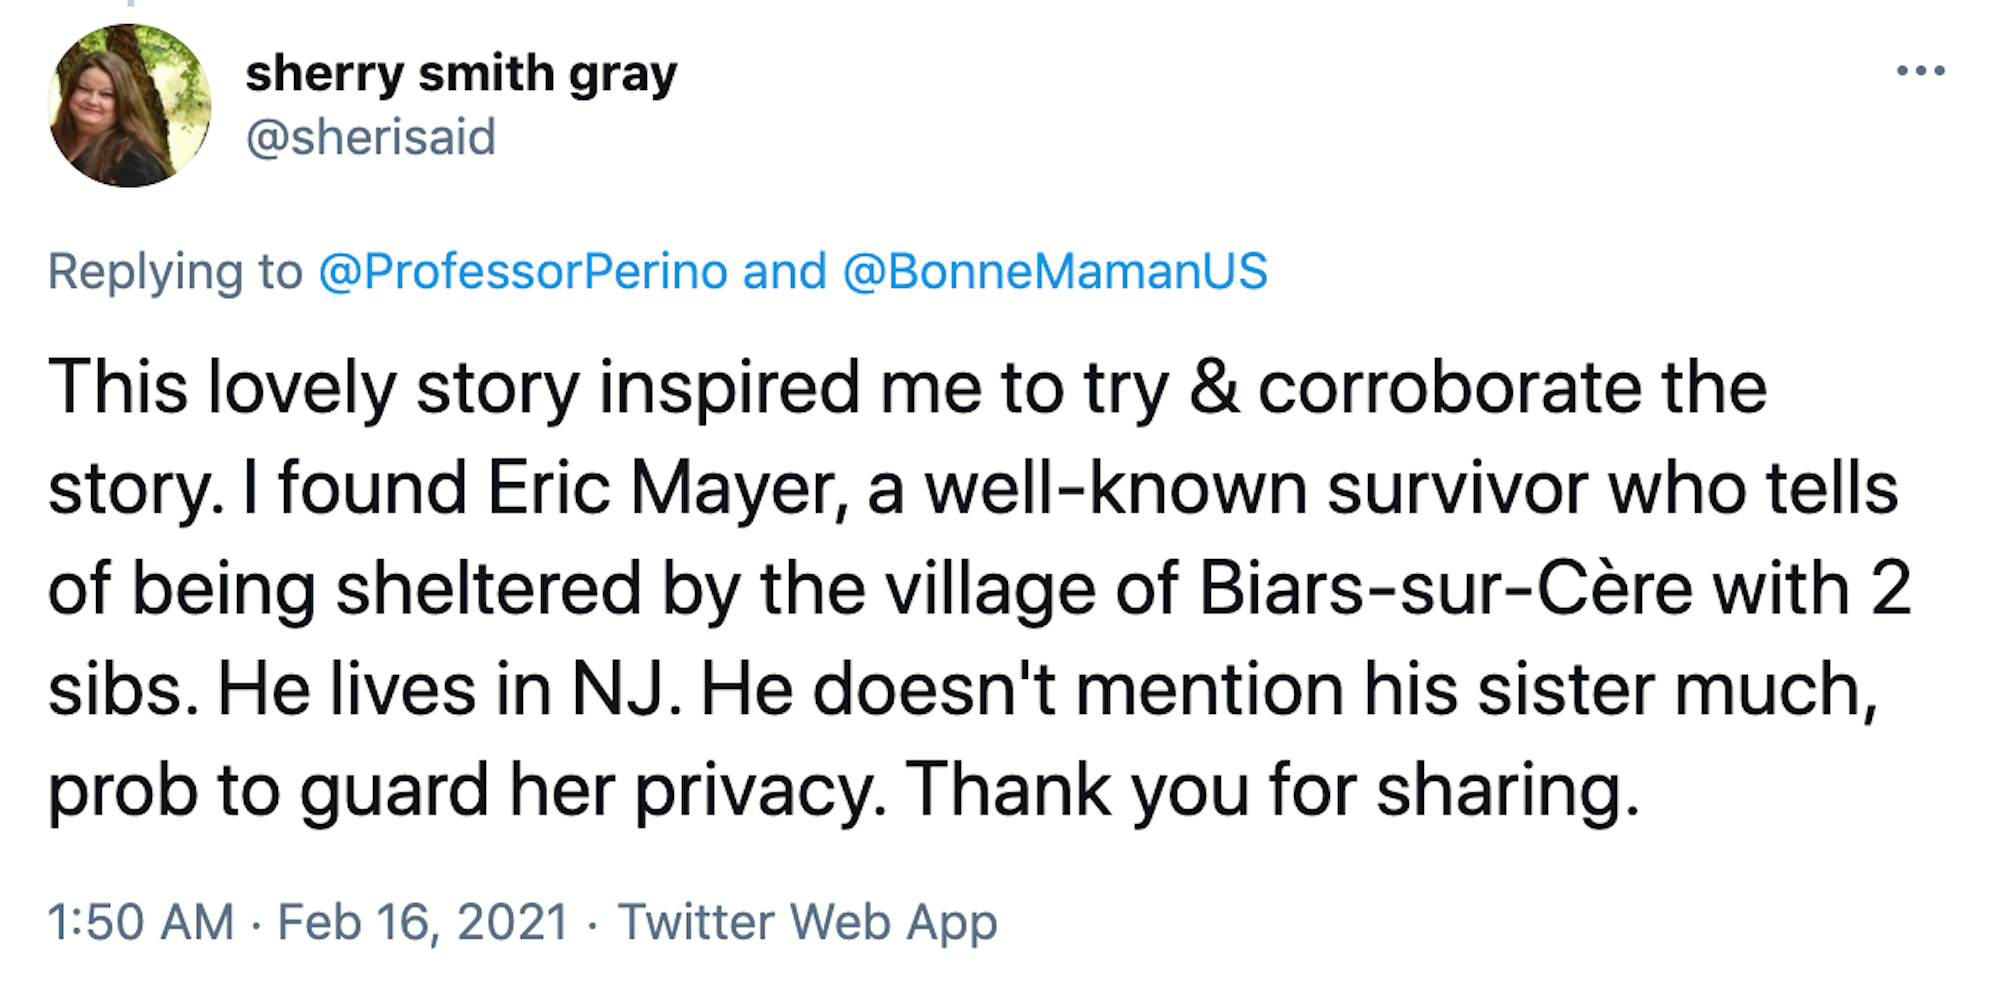 This lovely story inspired me to try & corroborate the story. I found Eric Mayer, a well-known survivor who tells of being sheltered by the village of Biars-sur-Cère with 2 sibs. He lives in NJ. He doesn't mention his sister much, prob to guard her privacy. Thank you for sharing.